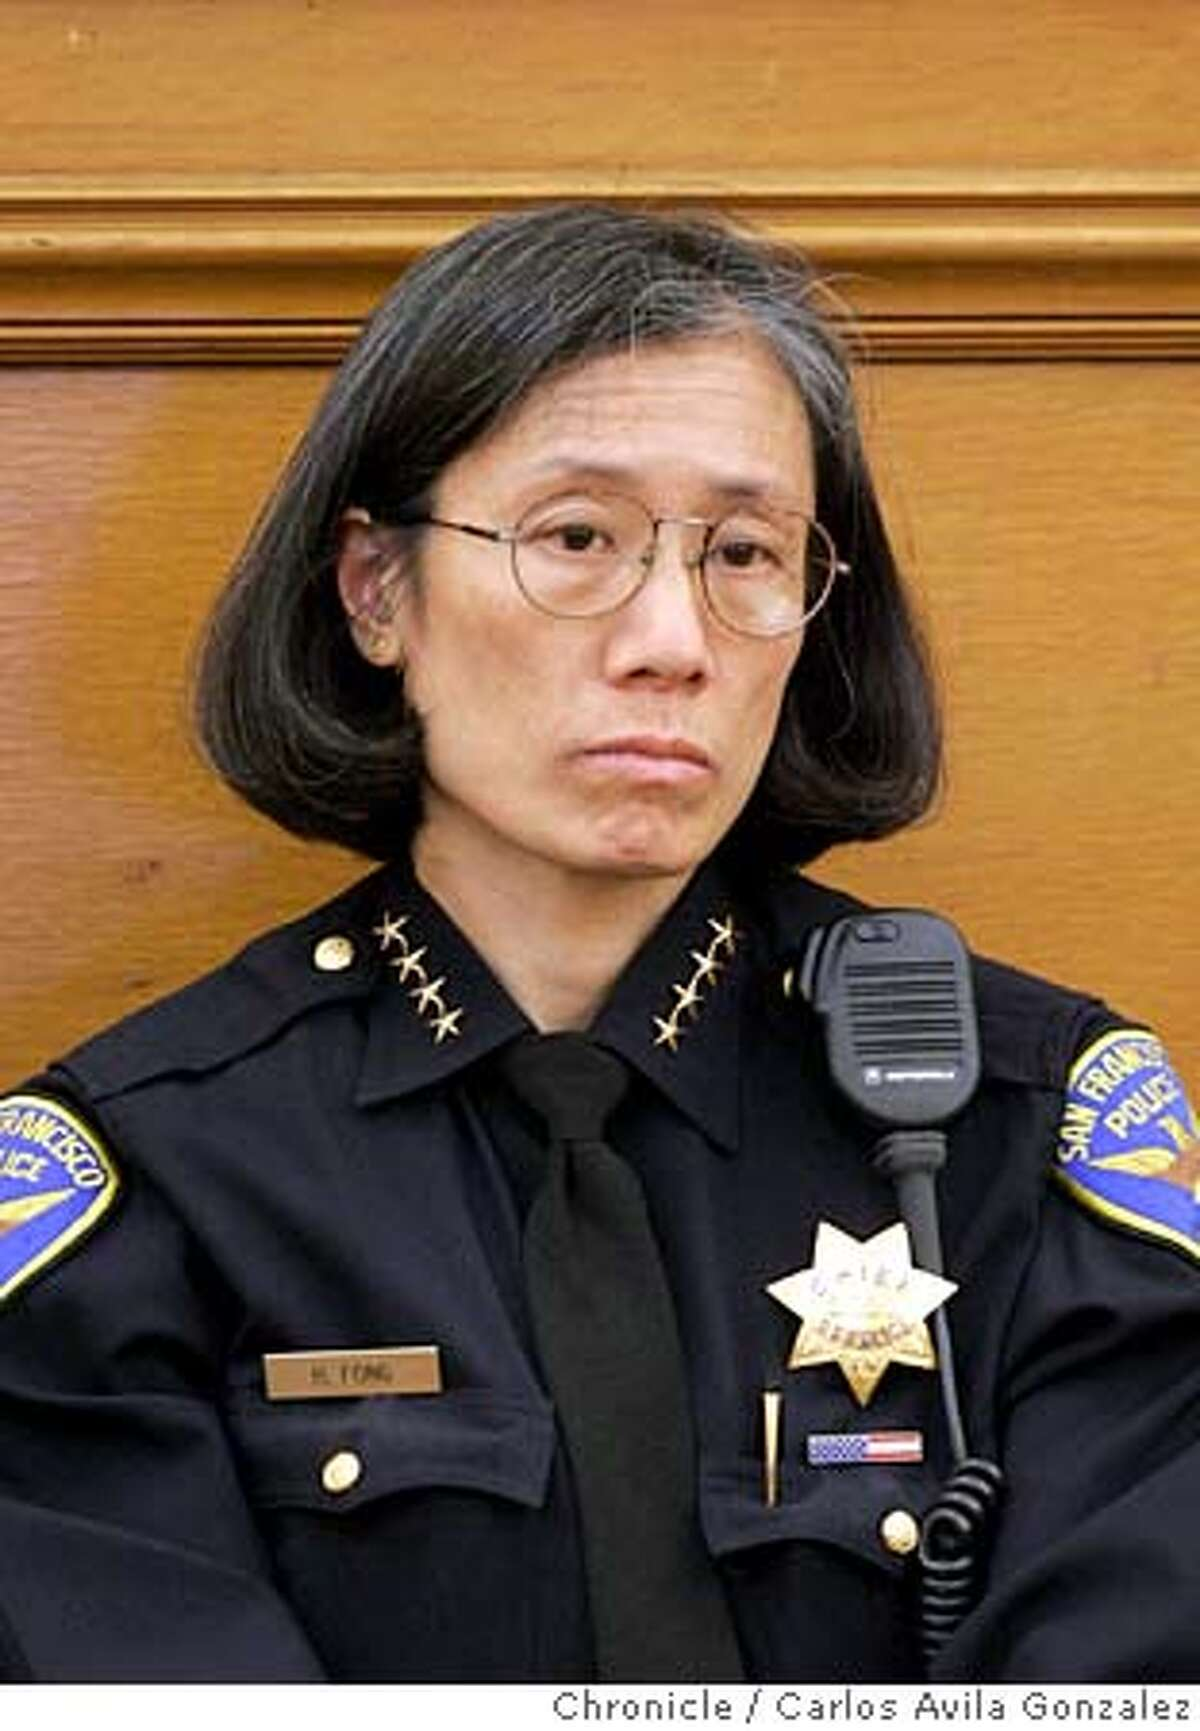 SFPD011_CAG.JPG San Francisco Police Department Chief, Heather Fong. Photo taken on 10/06/04, in San Francisco, Ca. Photo by Carlos Avila Gonzalez/The San Francisco Chronicle MANDATORY CREDIT FOR PHOTOG AND SF CHRONICLE/ -MAGS OUT